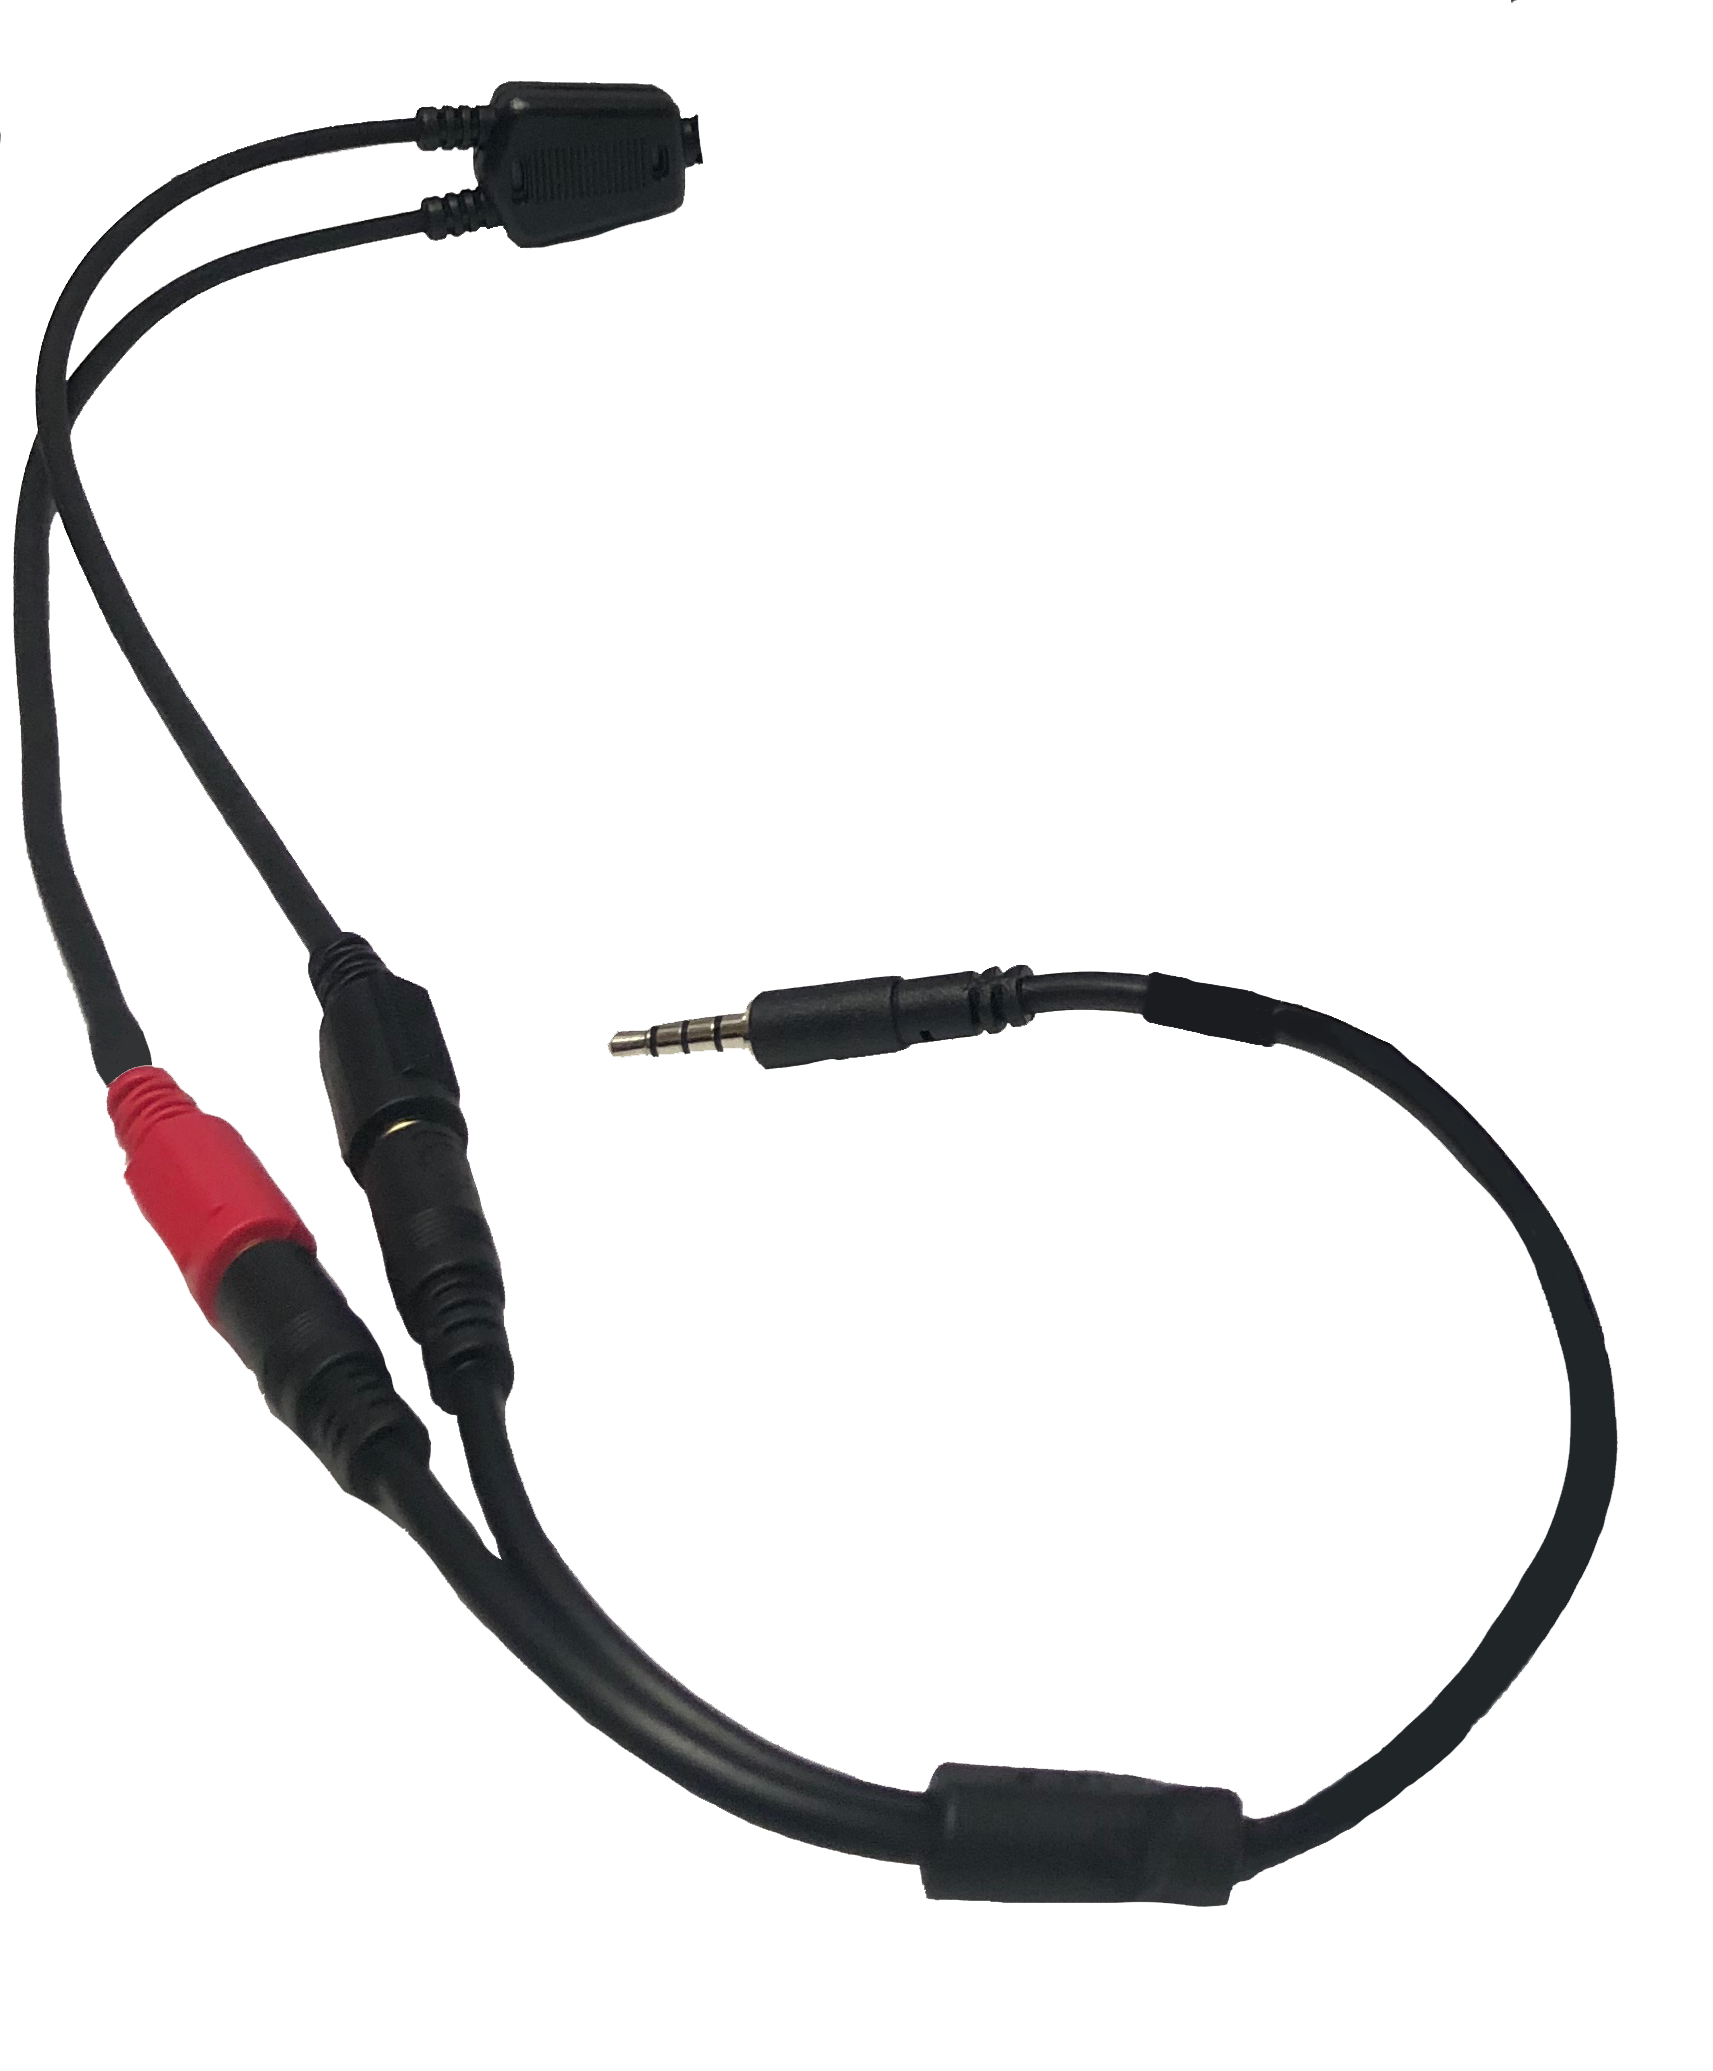 W-ADP 016 Headset Y splitter